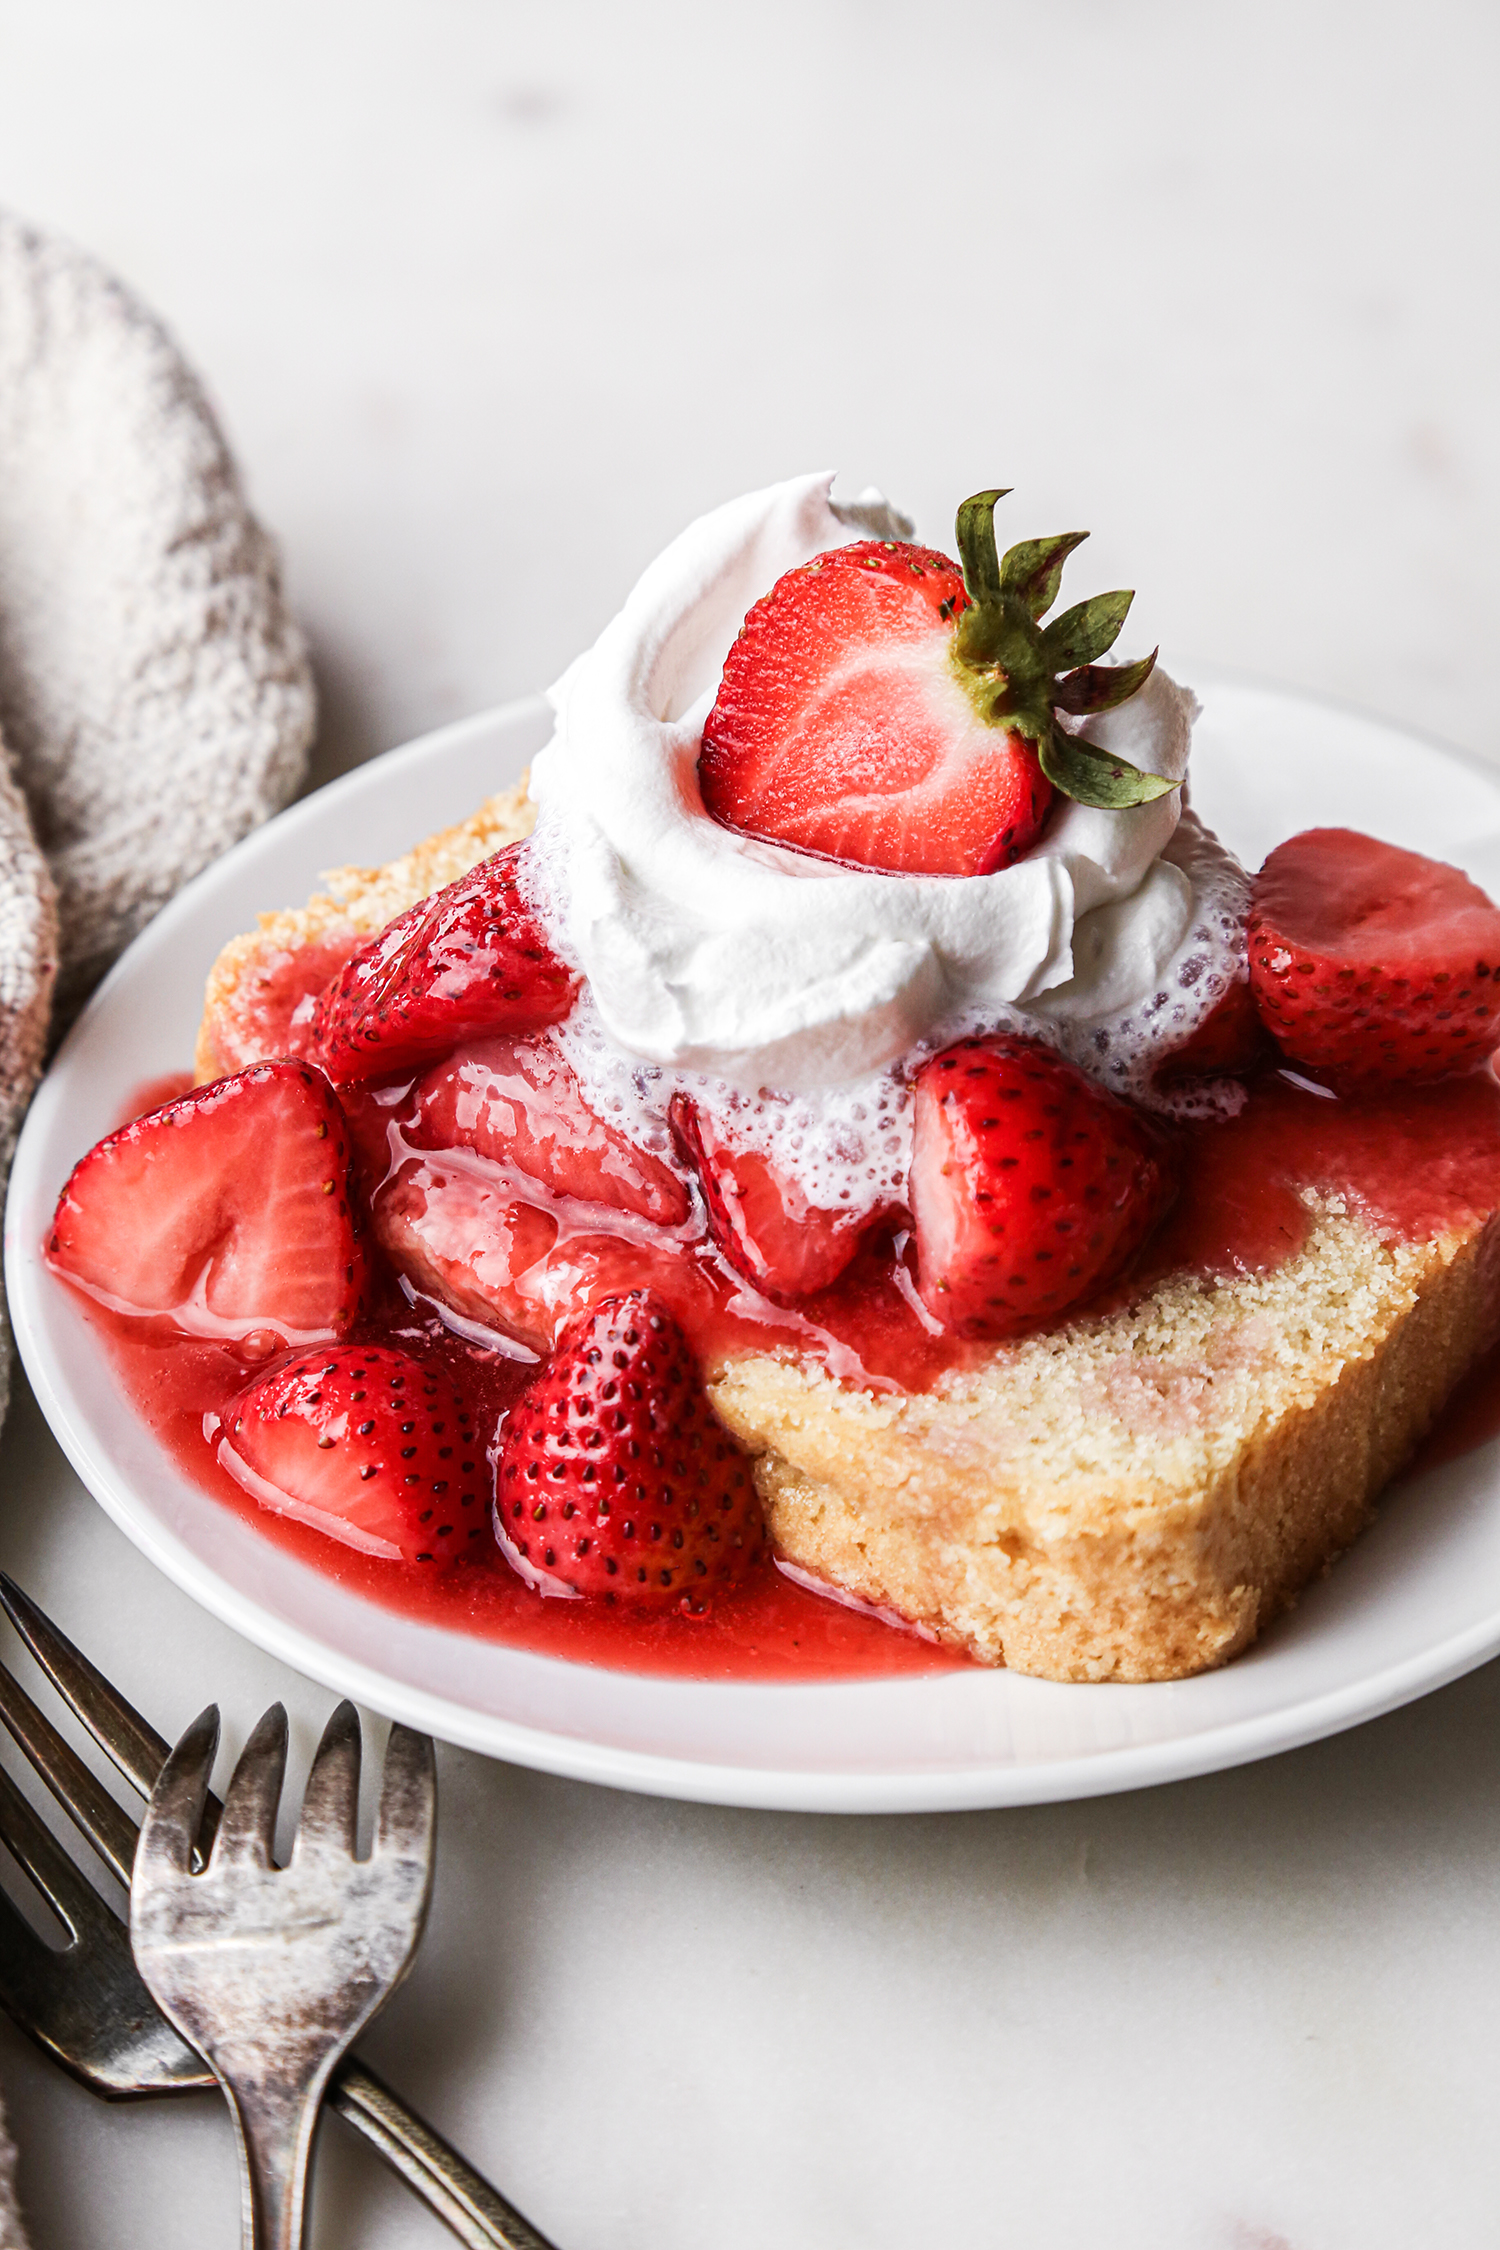 Vegan Pound Cake Slice with Strawberry Sauce and Whipped Cream